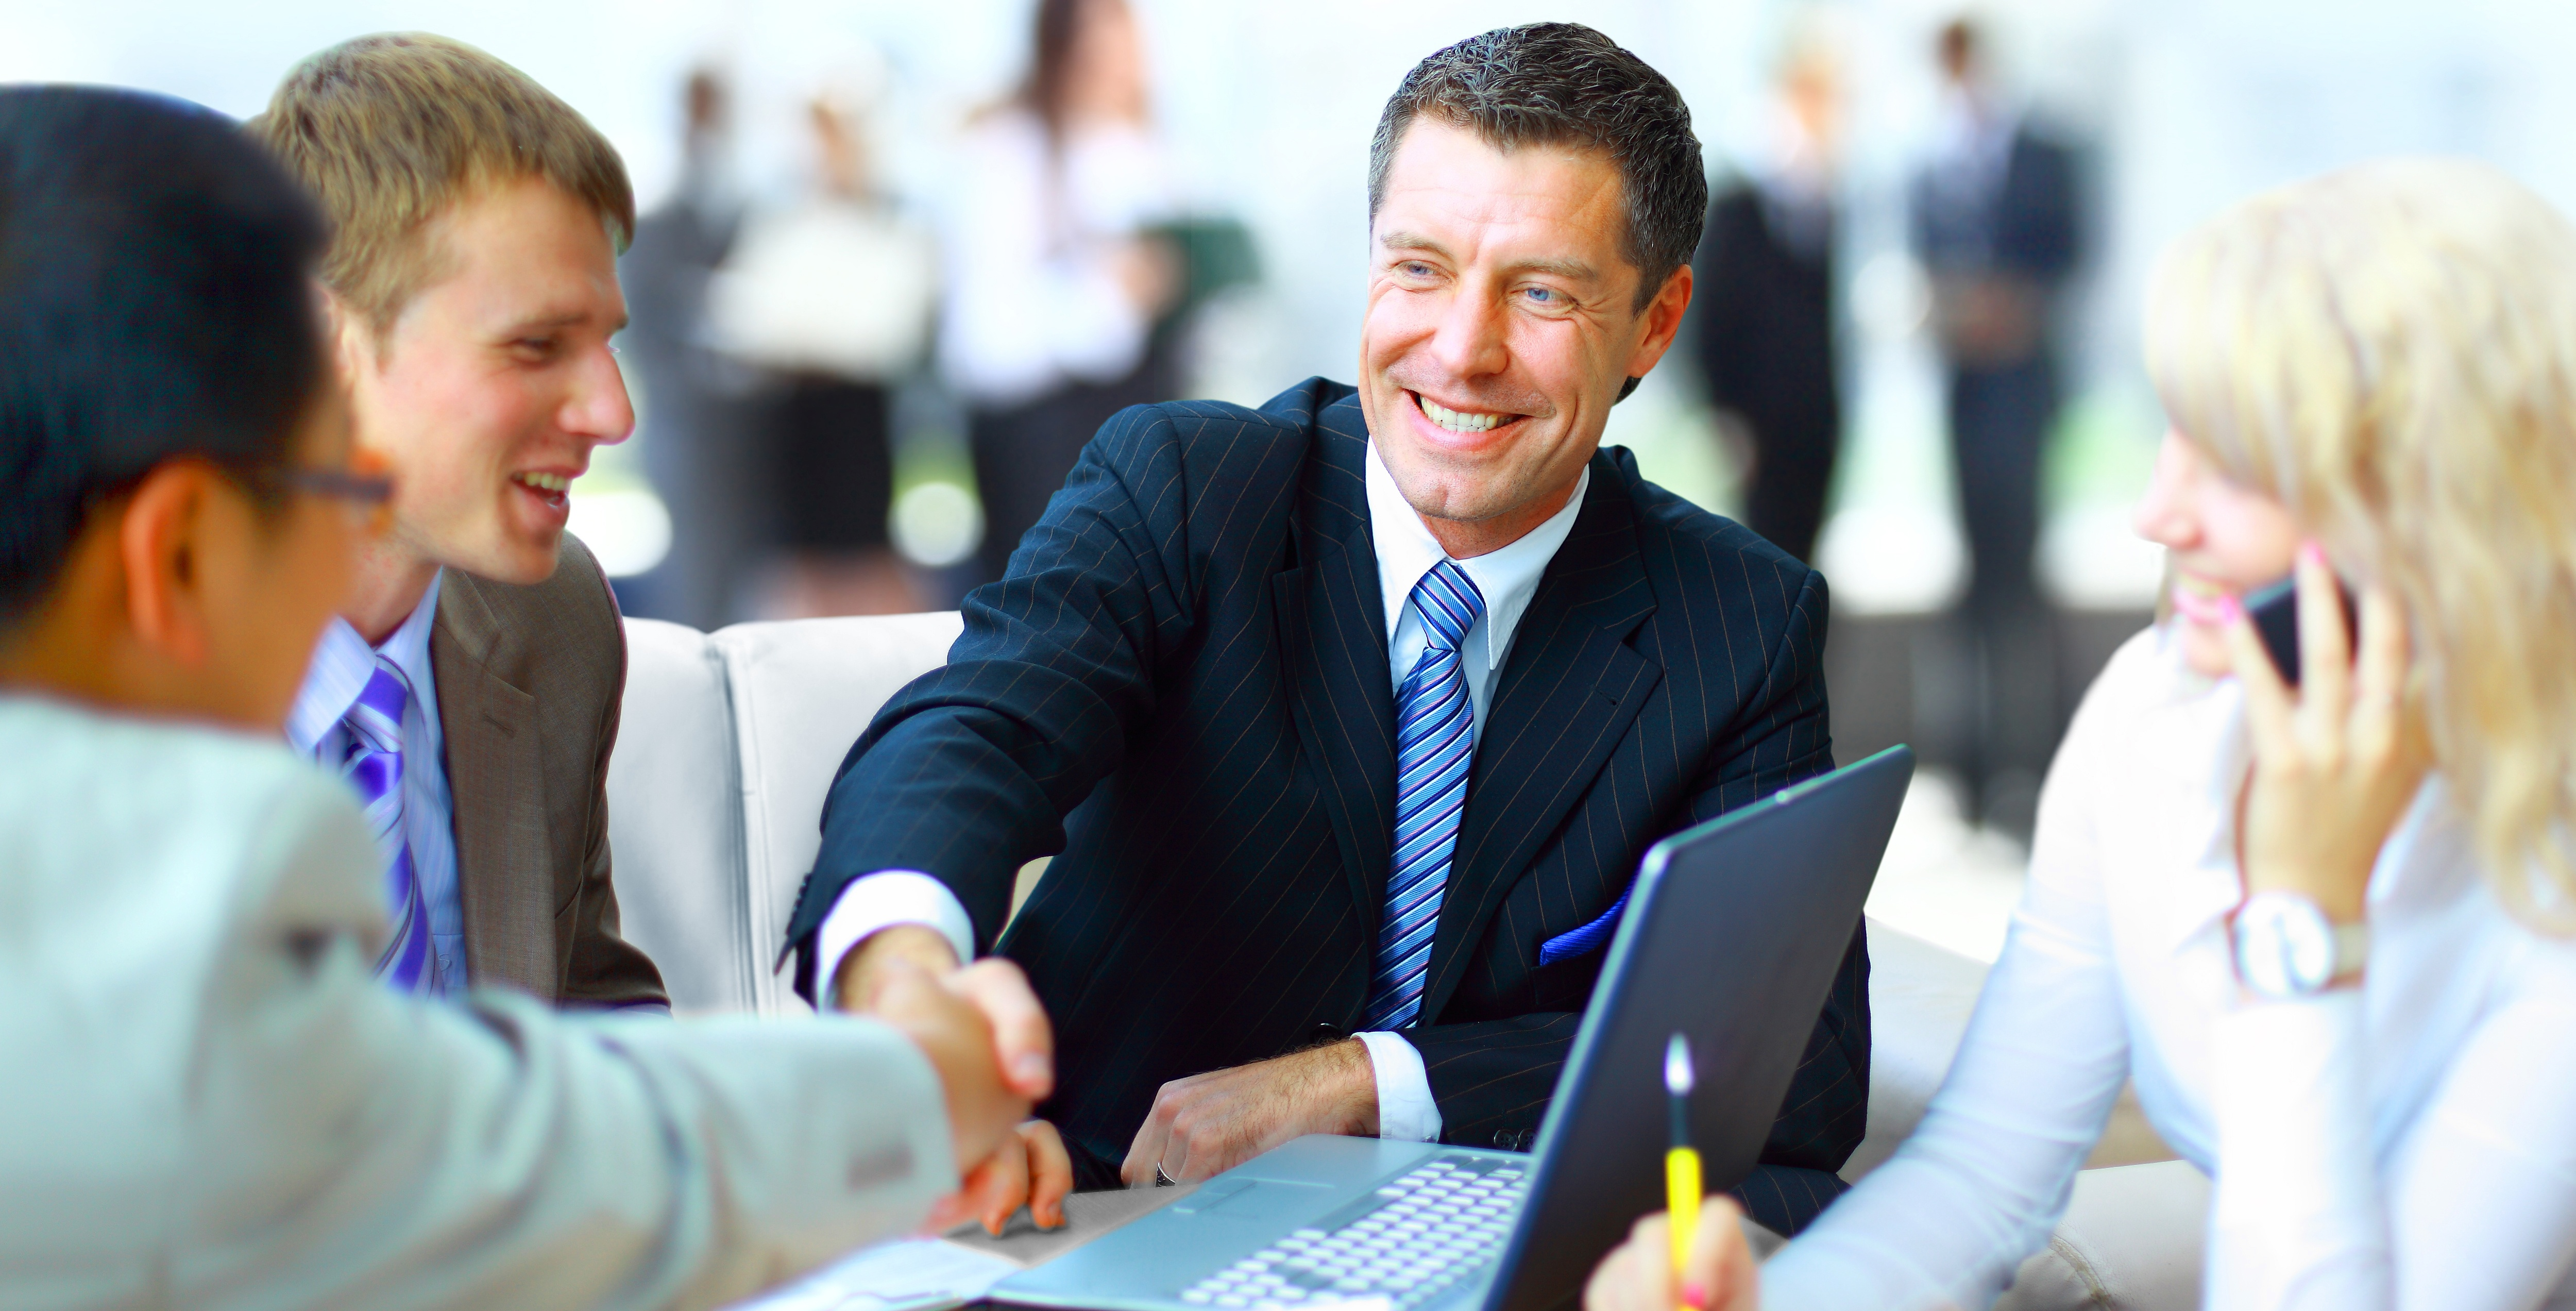 Business Owner's Policy Insurance